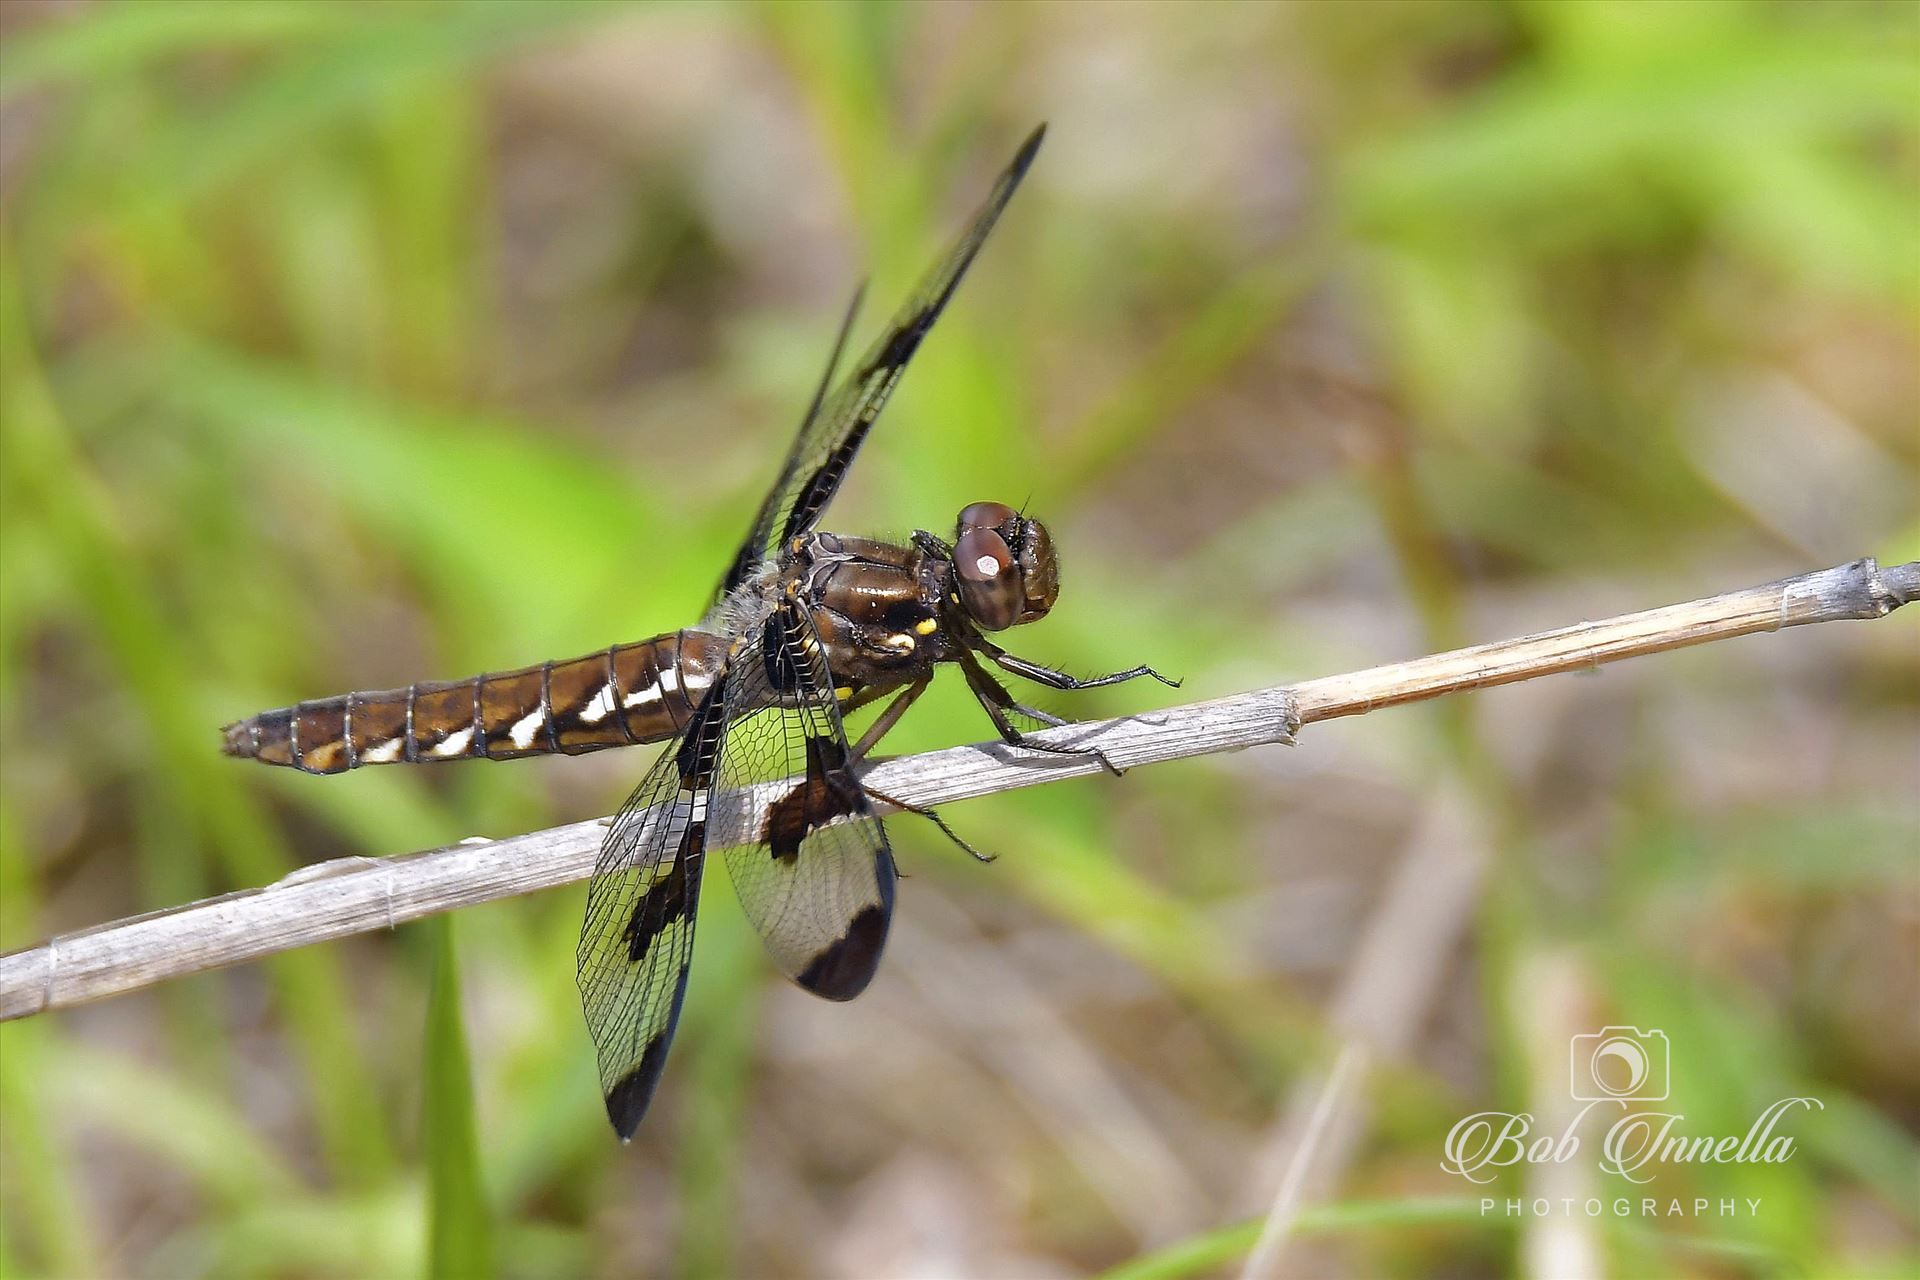 Dragon Fly - Taken in Montague, NJ by Buckmaster